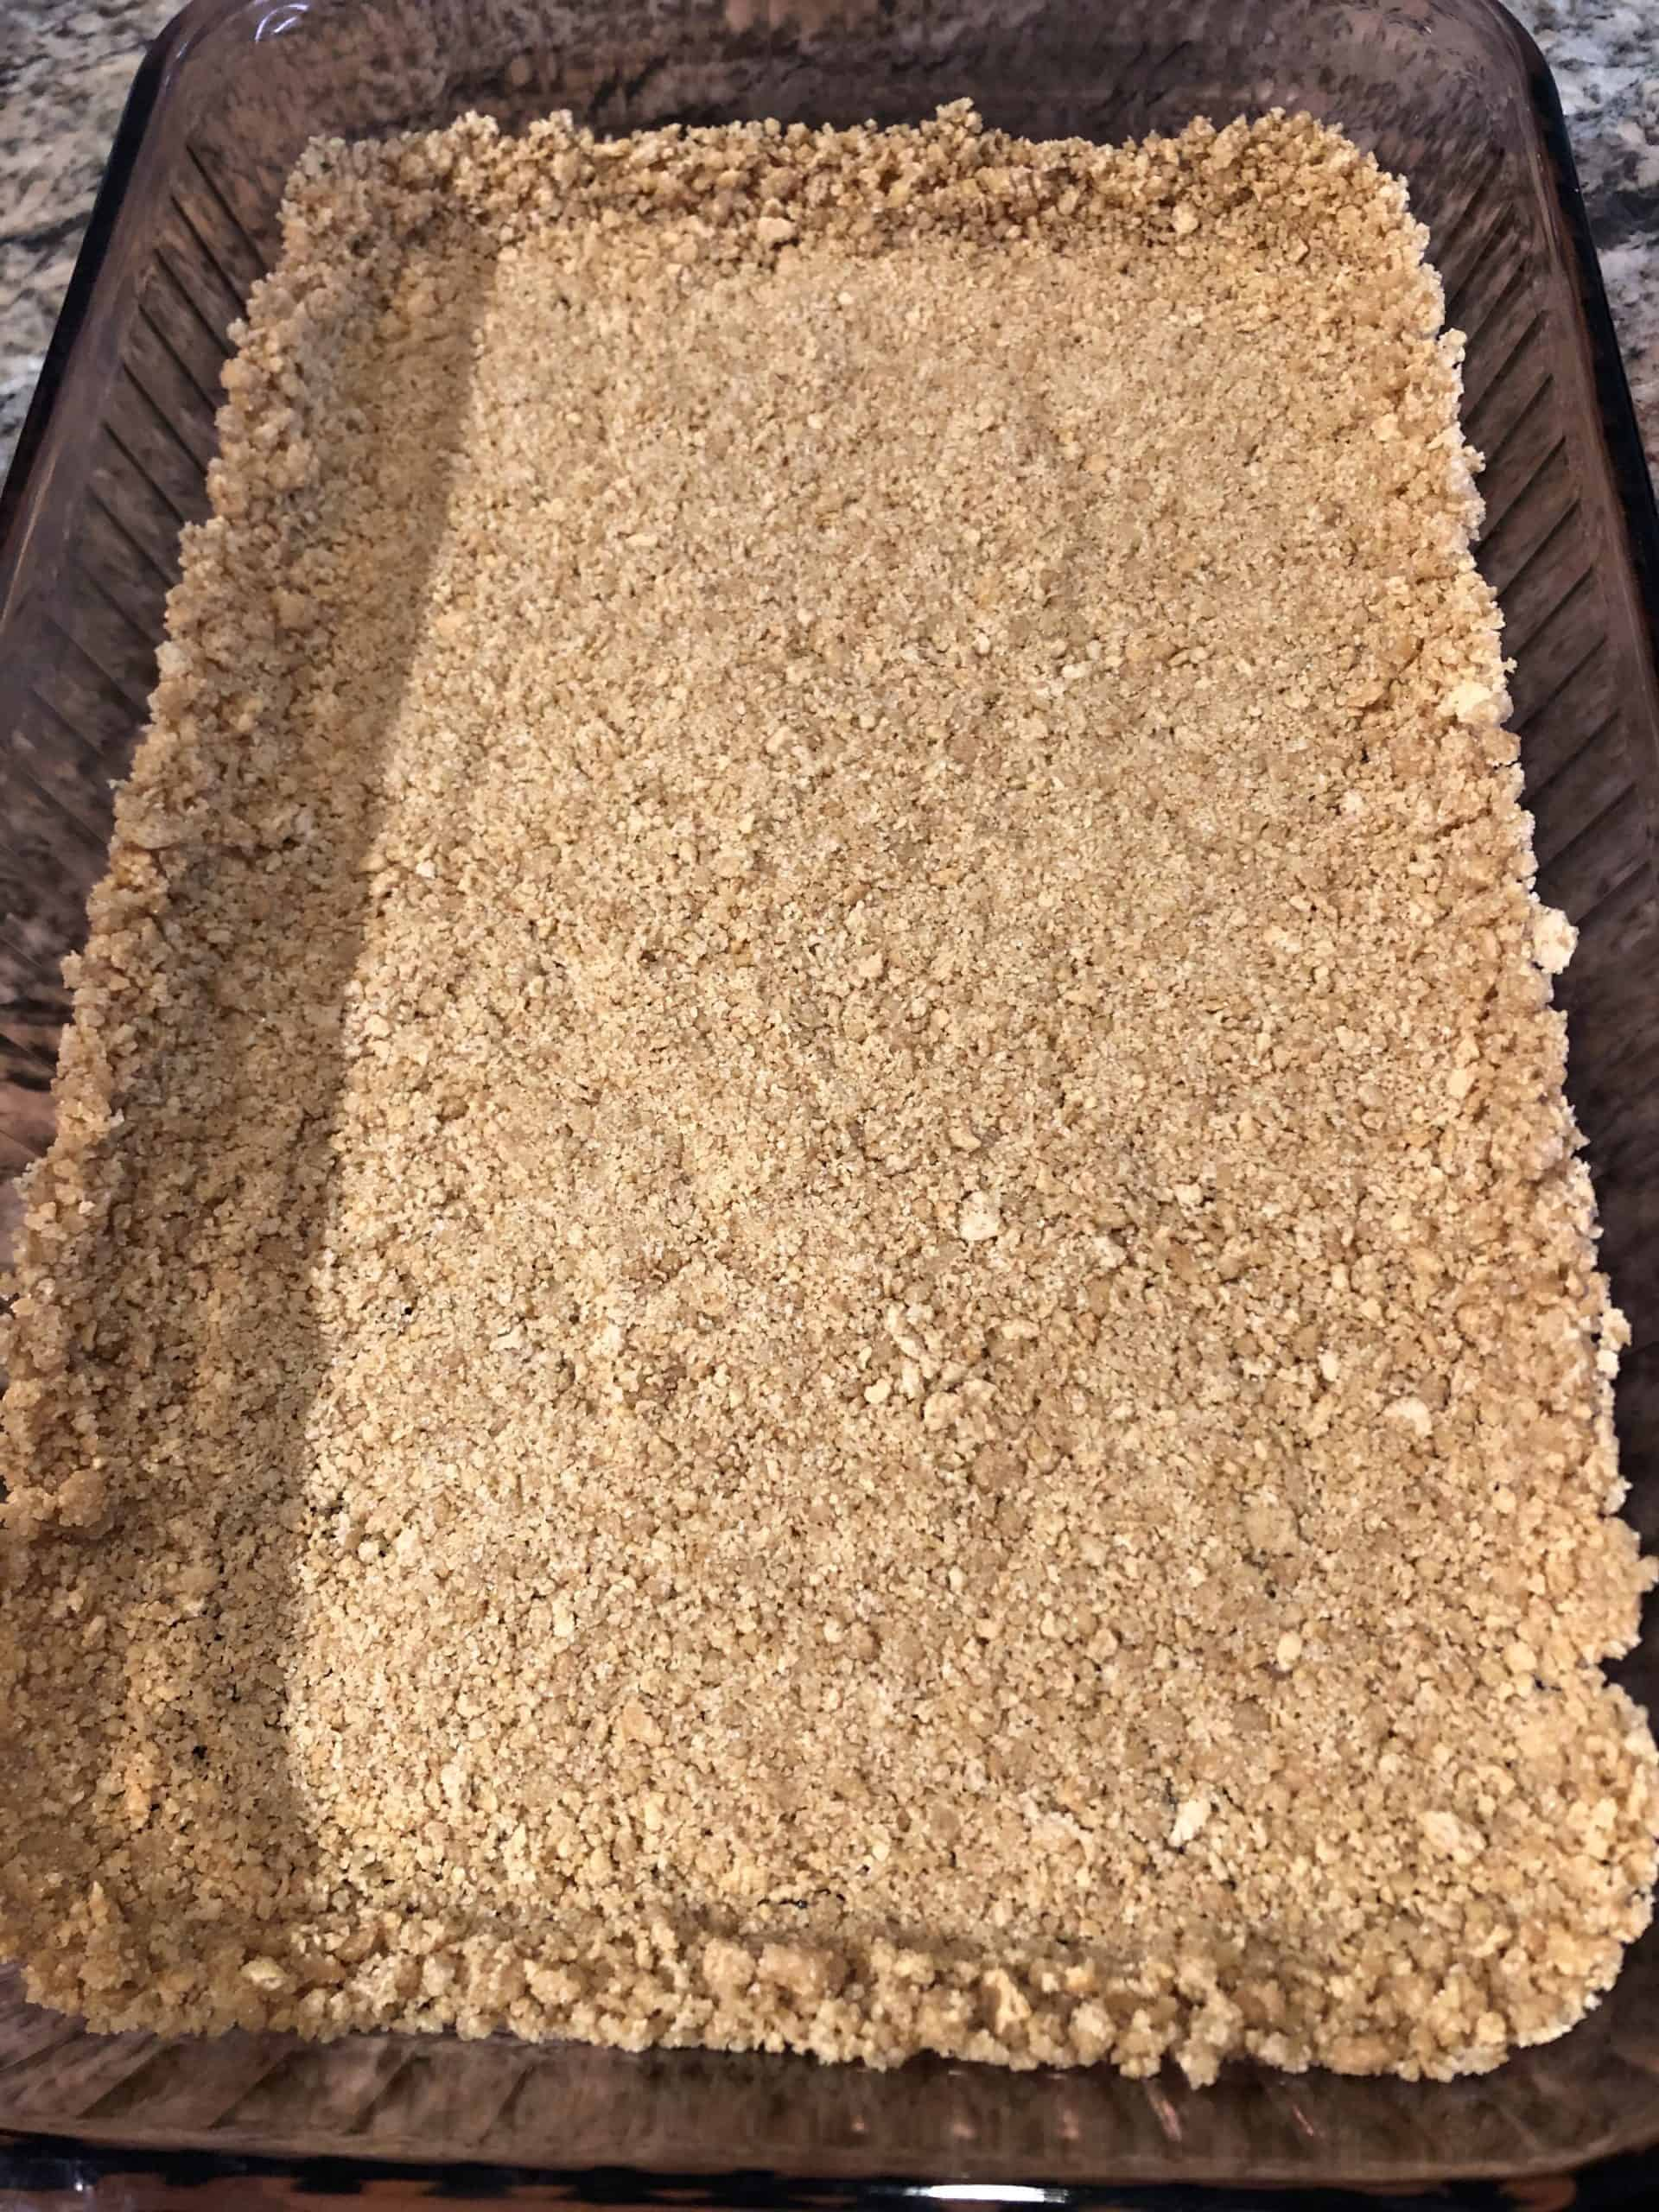 Packed Graham Cracker Crust into Baking Dish